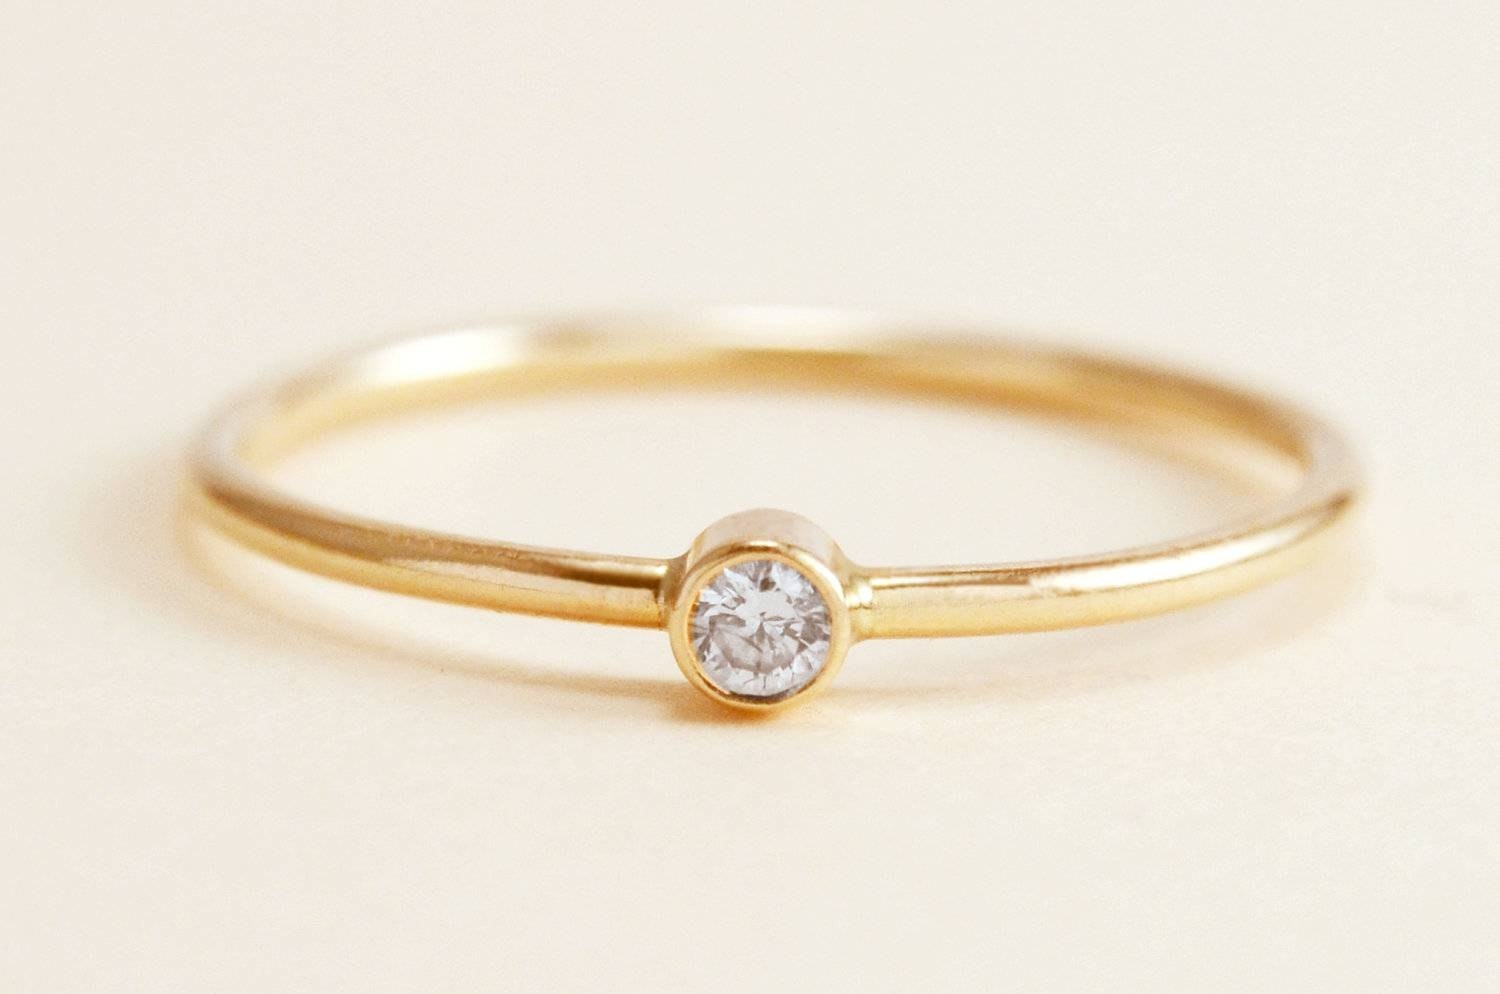 Simple Diamond Ring In 14K Gold With Simple Engagement Rings Without Diamond (View 12 of 15)